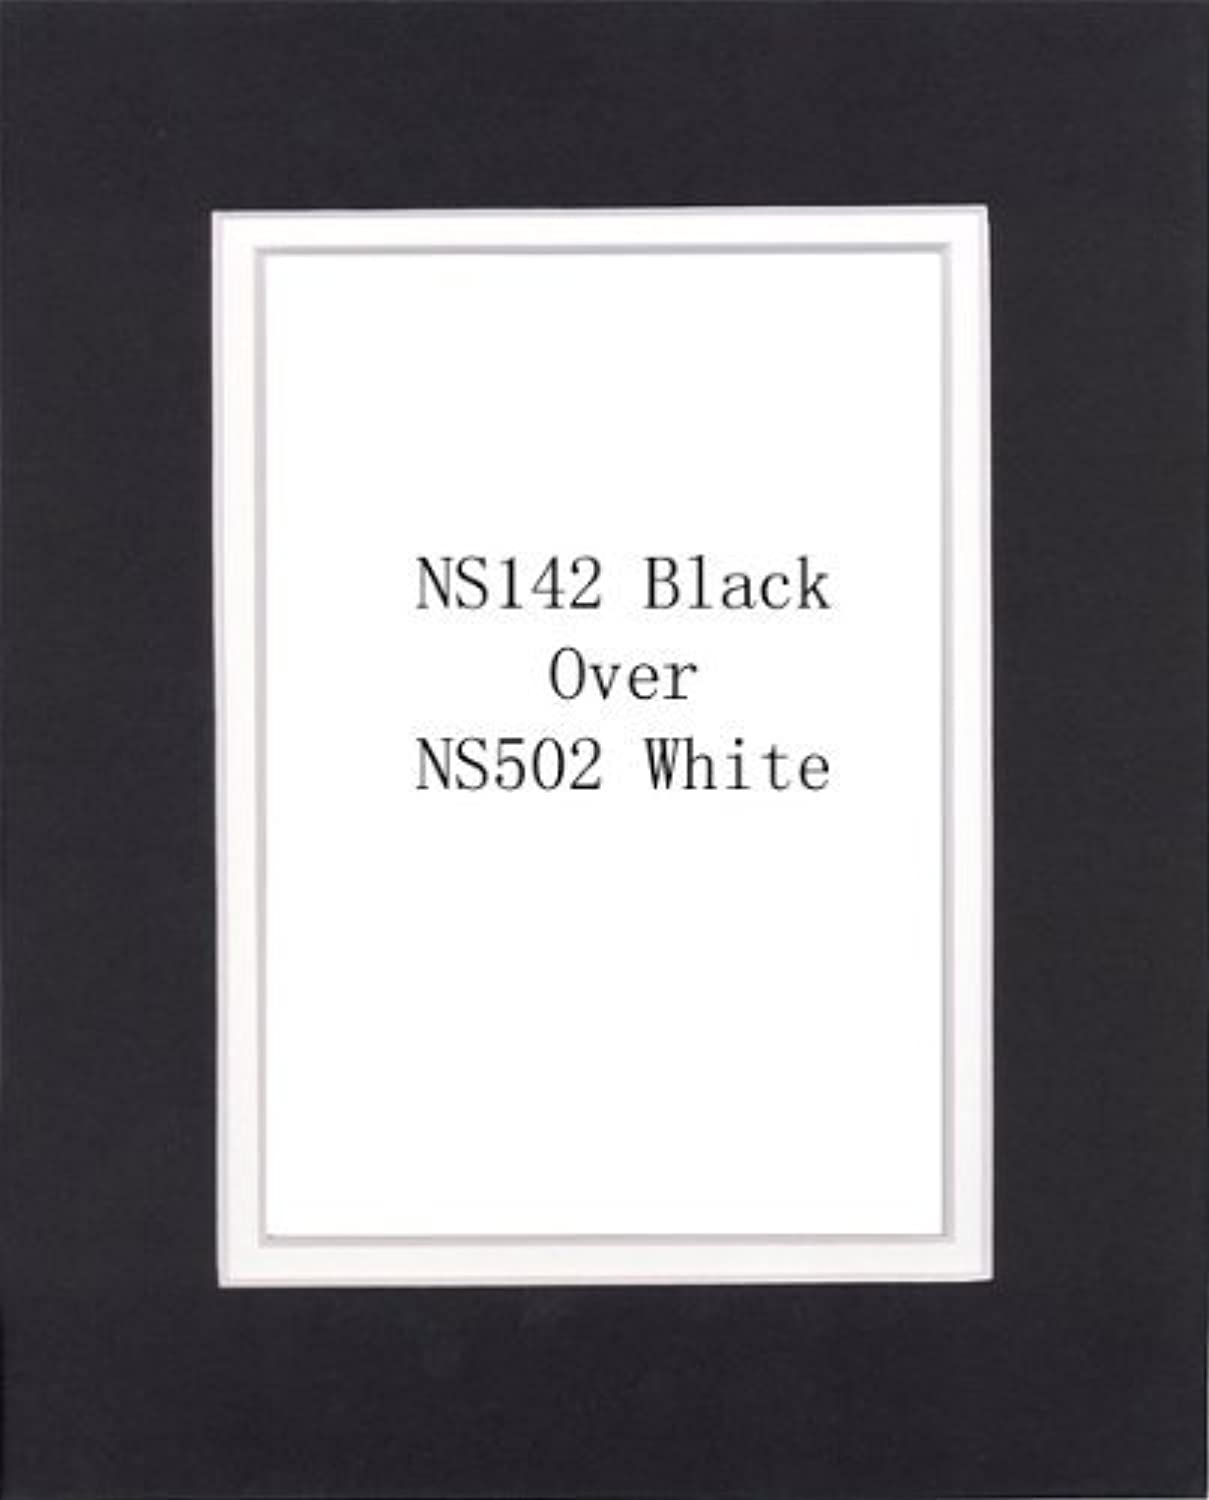 Pack of 32 8x10 Black White Double Mats Mattes with White Core Bevel Cut for 5x7 Photo + Backing + Bags